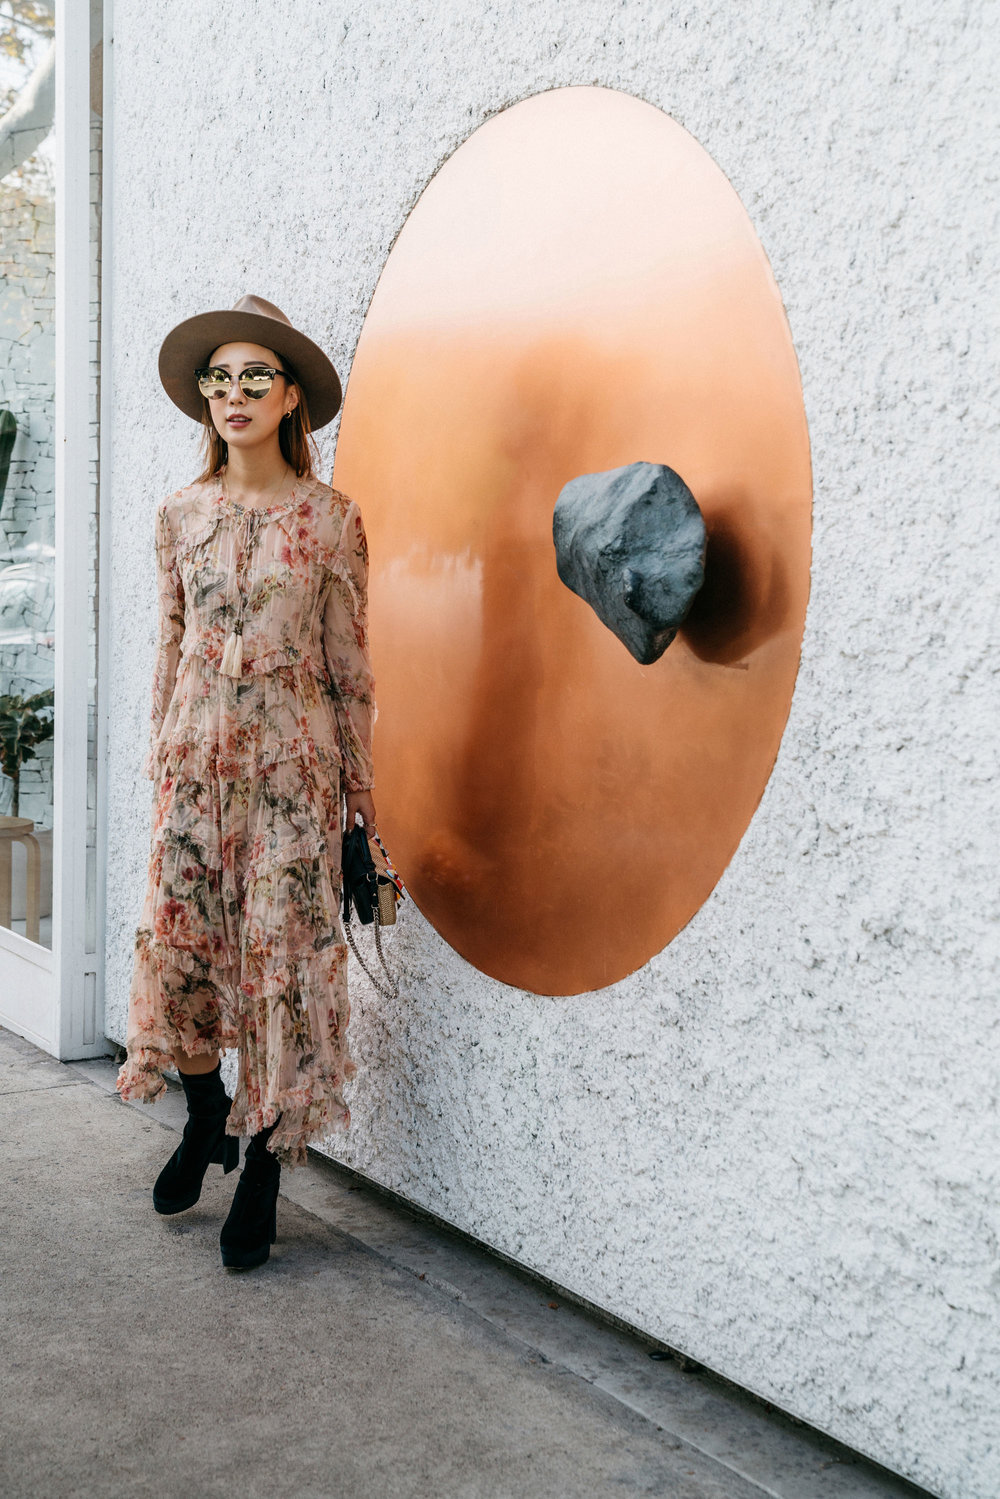 Zimmermann Dress, Miu Miu Boots, Fendi Bag, Janessa Leone Hat, Gentle Monster Sunglasses